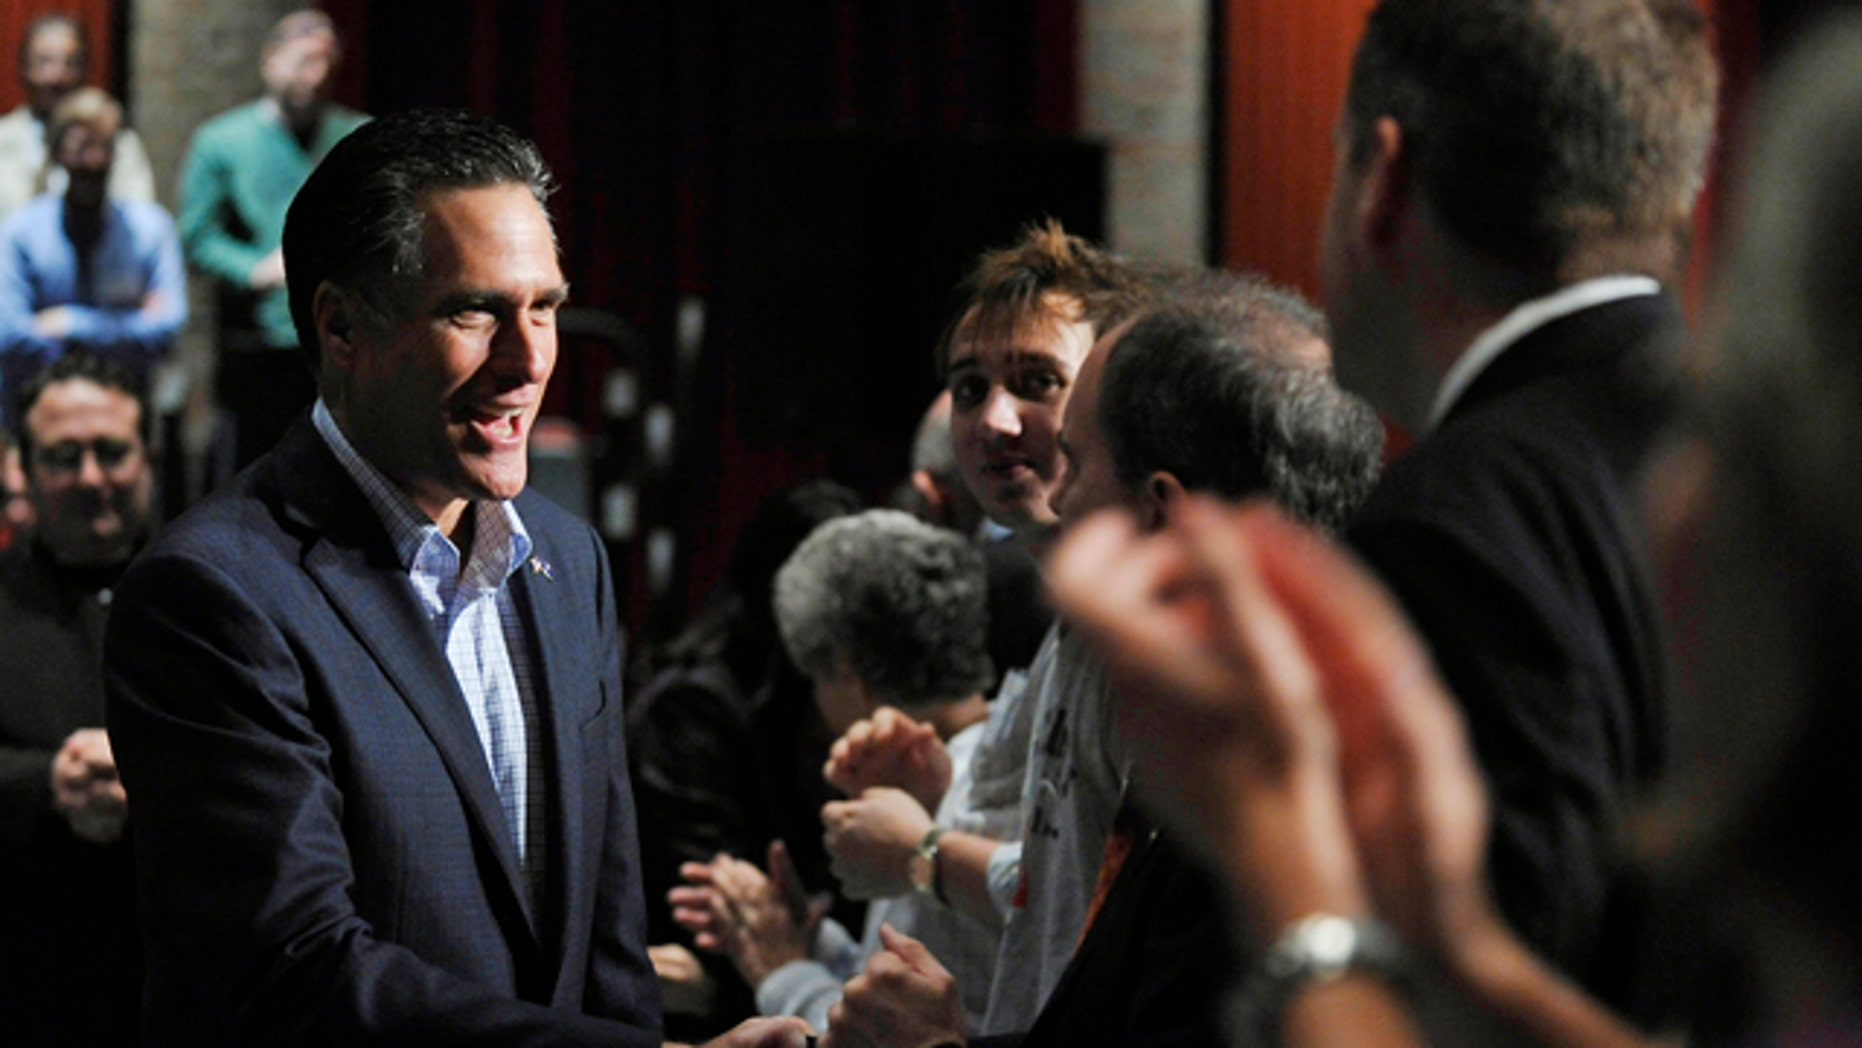 Dec. 17, 2011: Republican presidential candidate and former Massachusetts Gov. Mitt Romney greets supporters during a town hall meeting at Memminger Auditorium in Charleston, S.C.